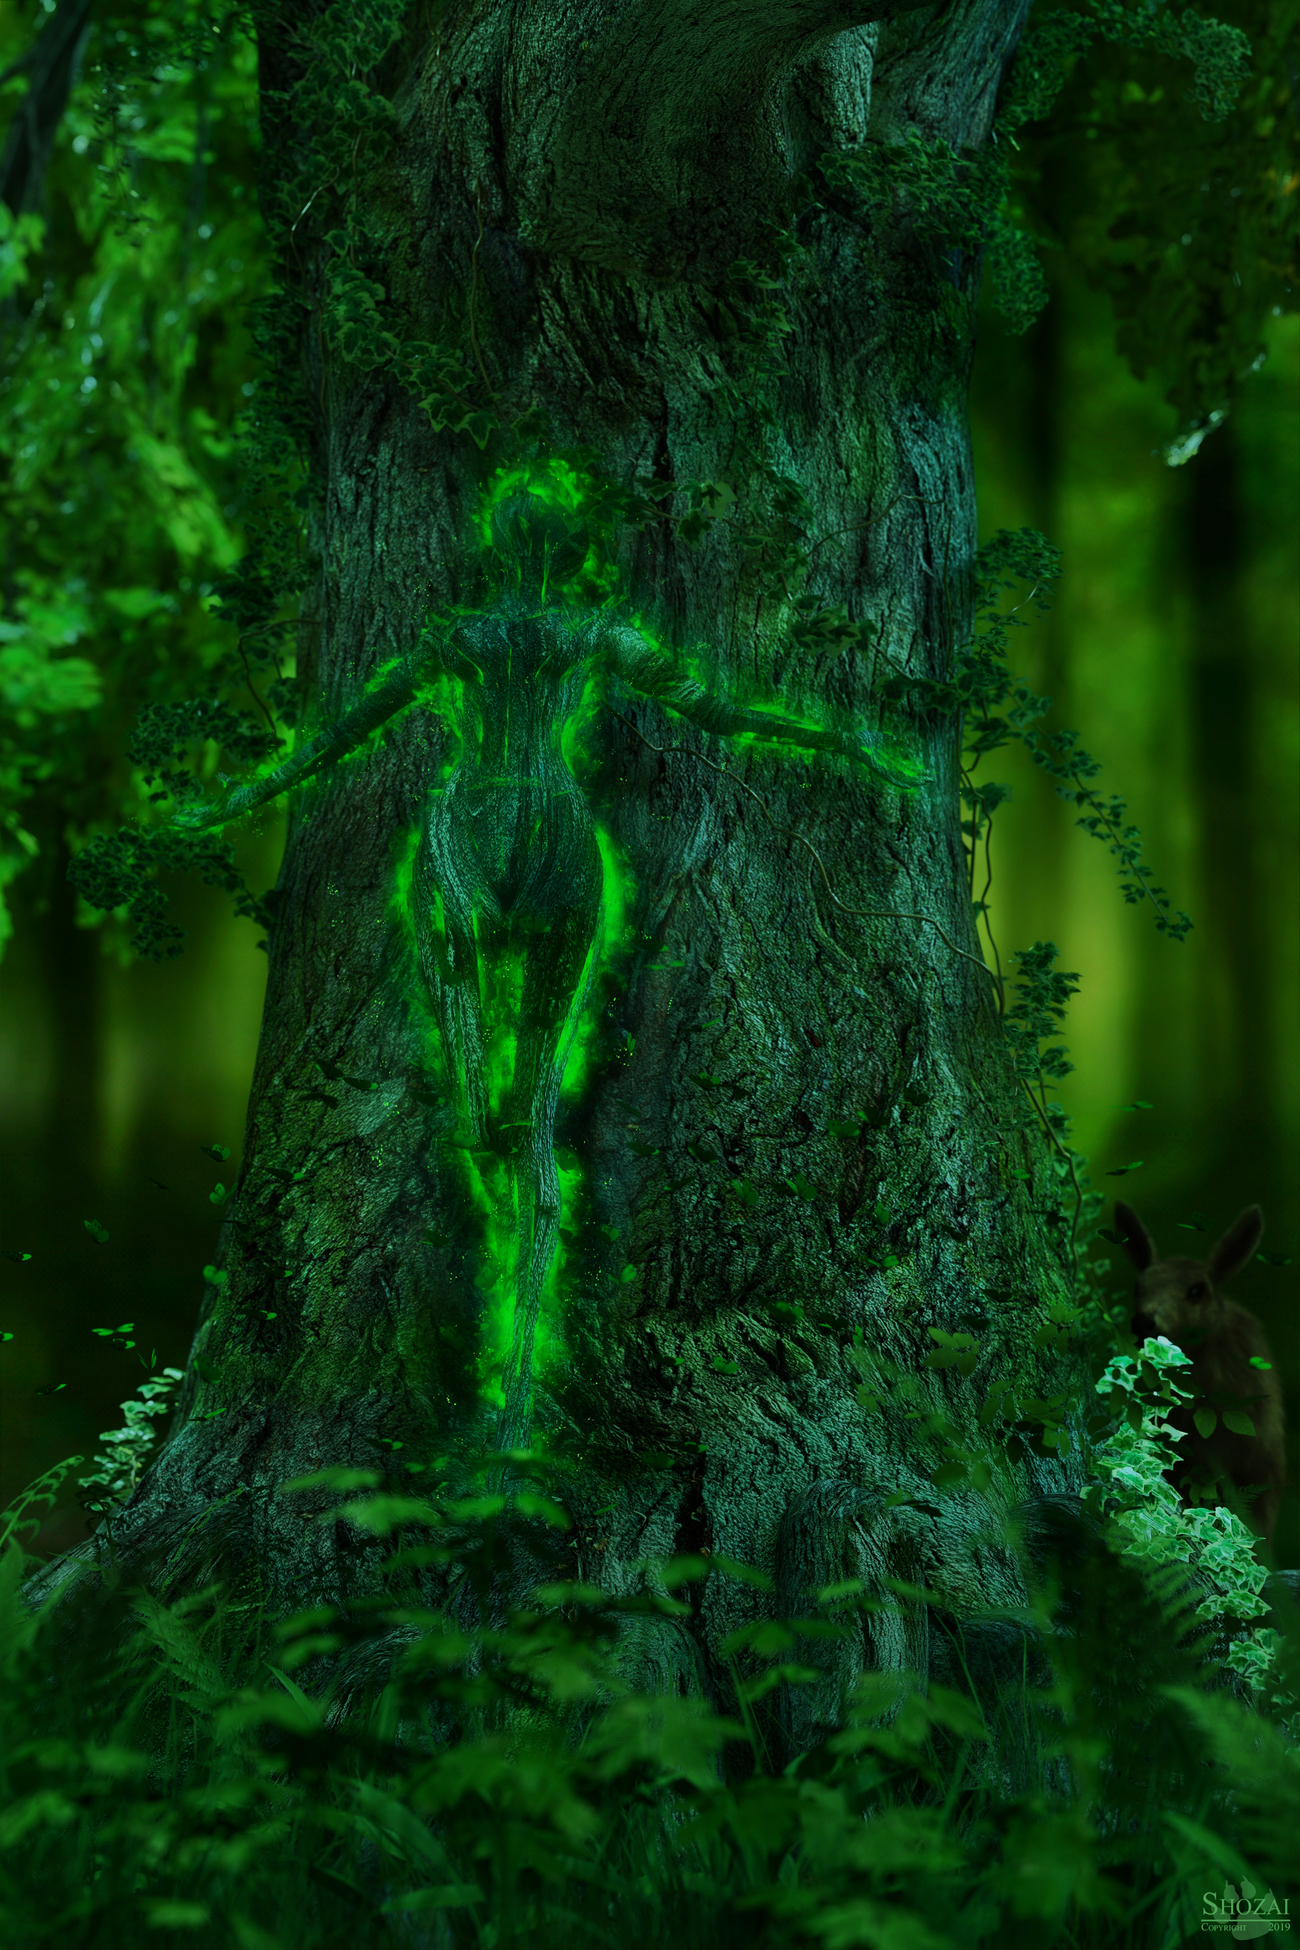 Birth of a forest spirit by Shozai